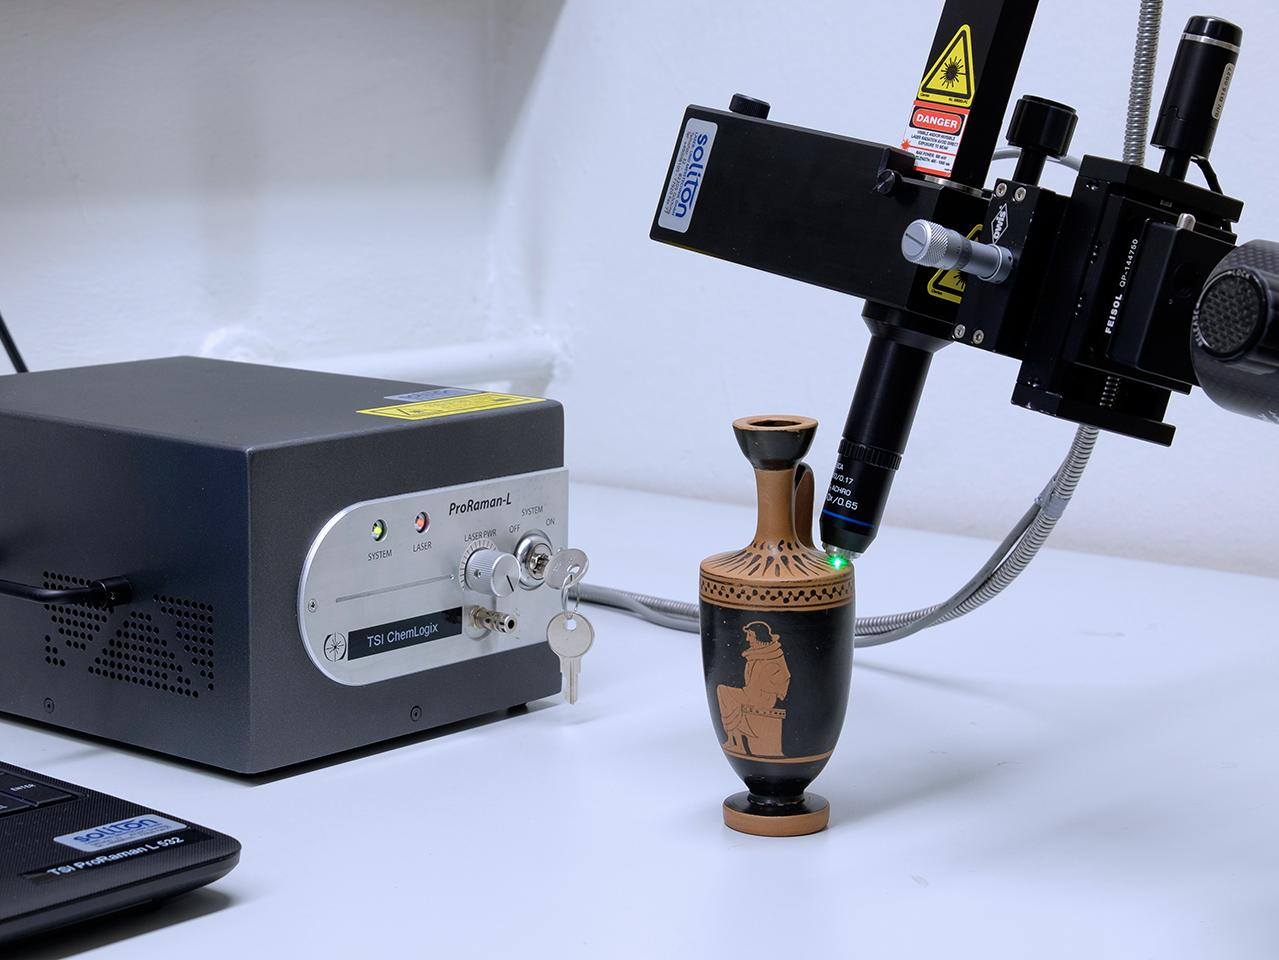 Mobile Raman spectrometer for the analysis of archaeological objects